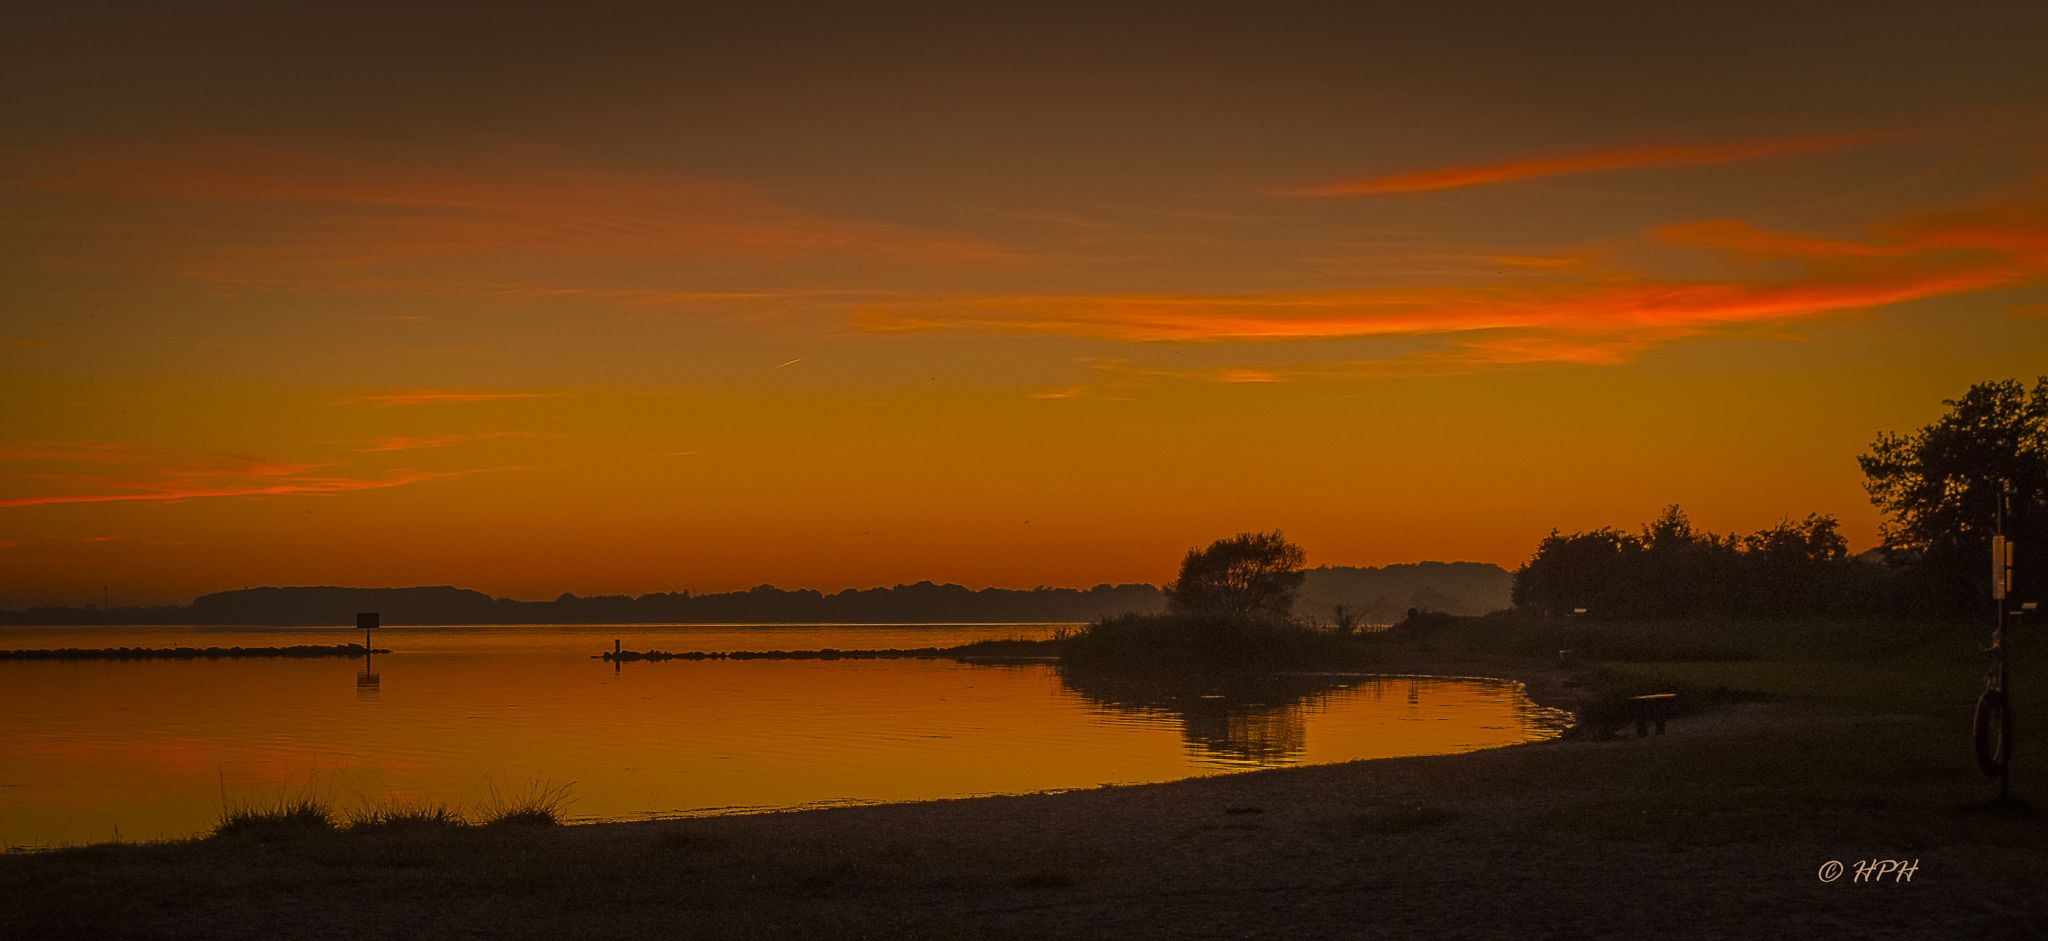 Sunset at the Schlei, Germany